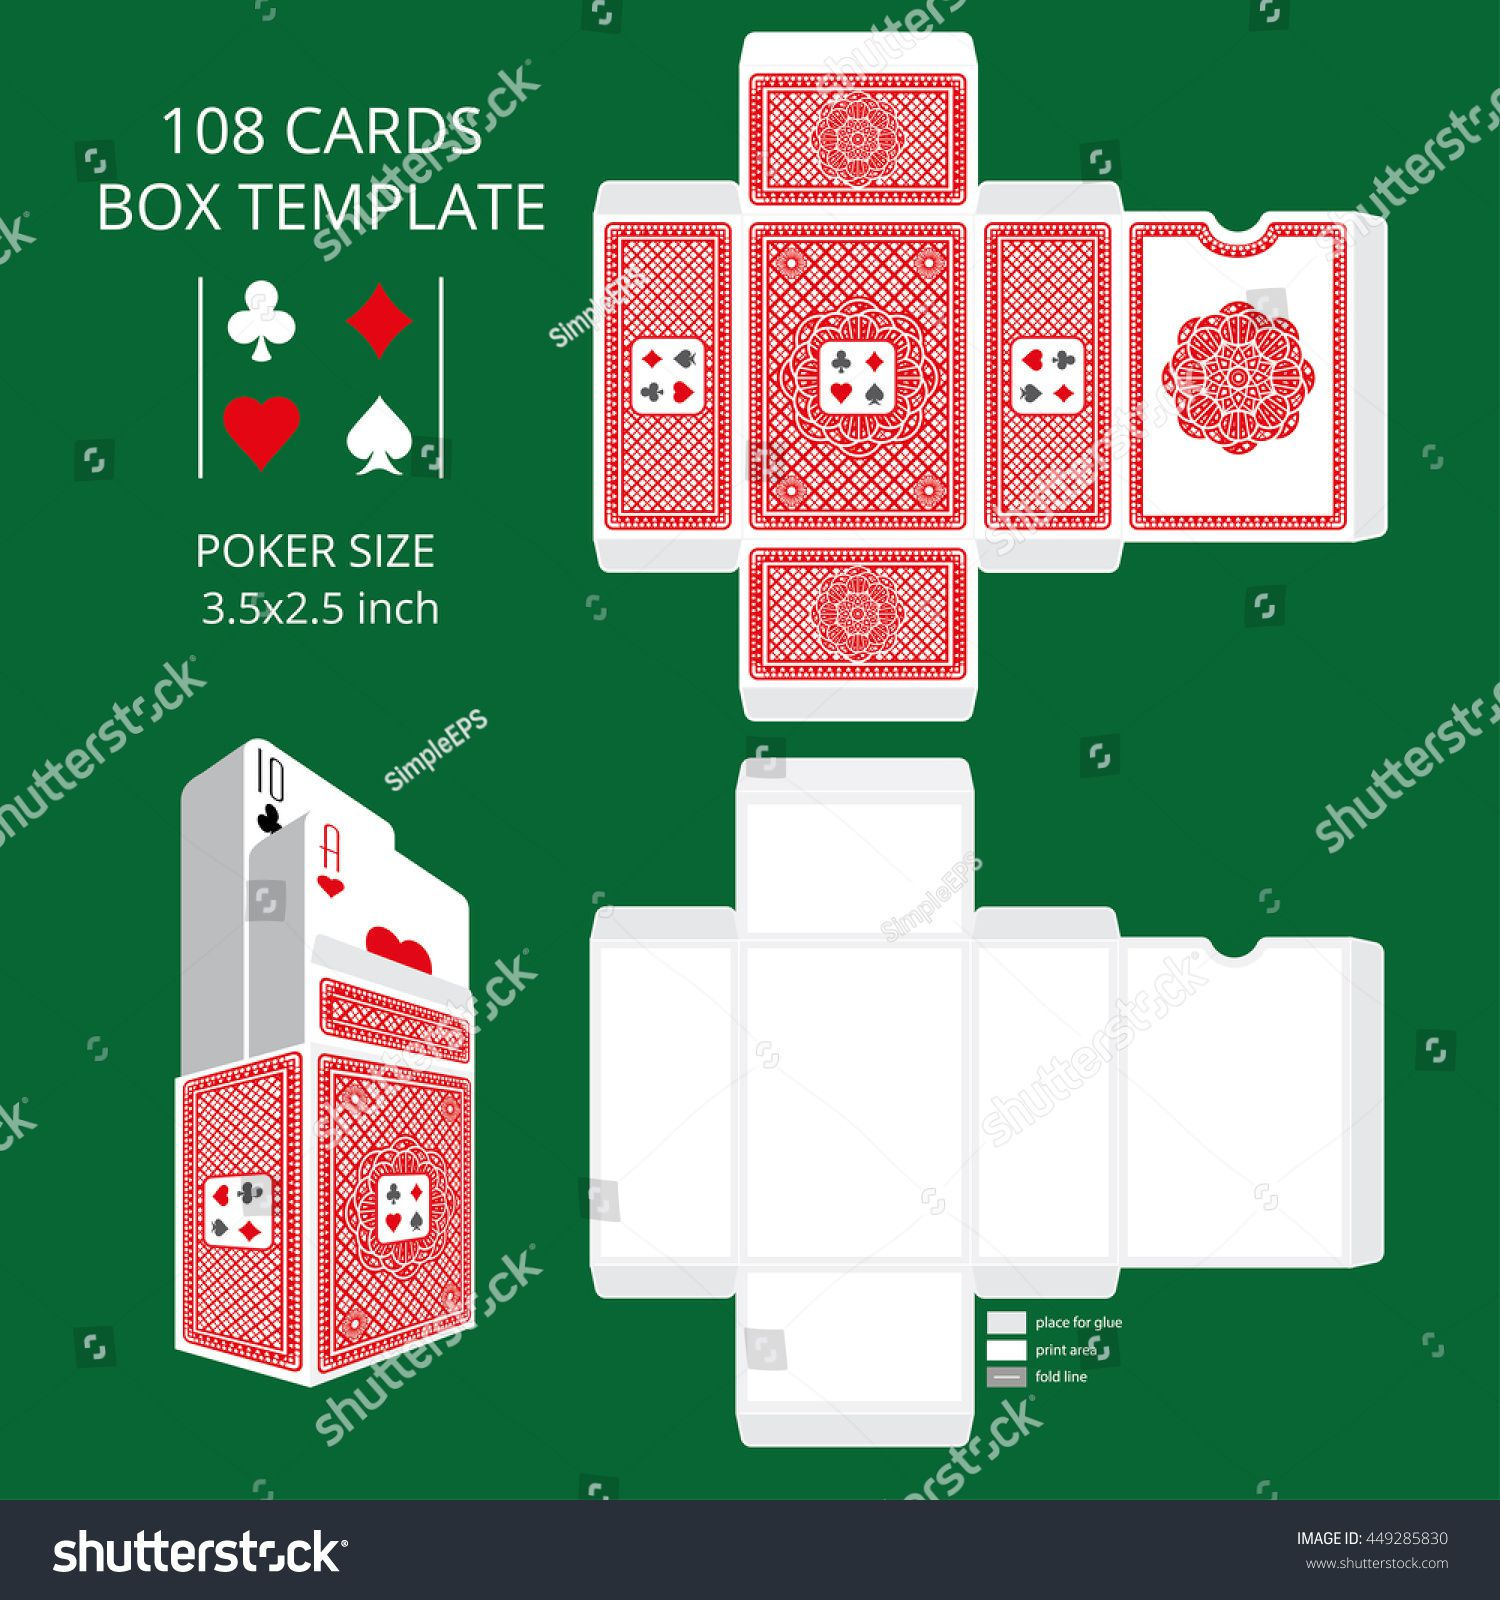 007 Fascinating Playing Card Size Template High Definition  Standard PokerFull